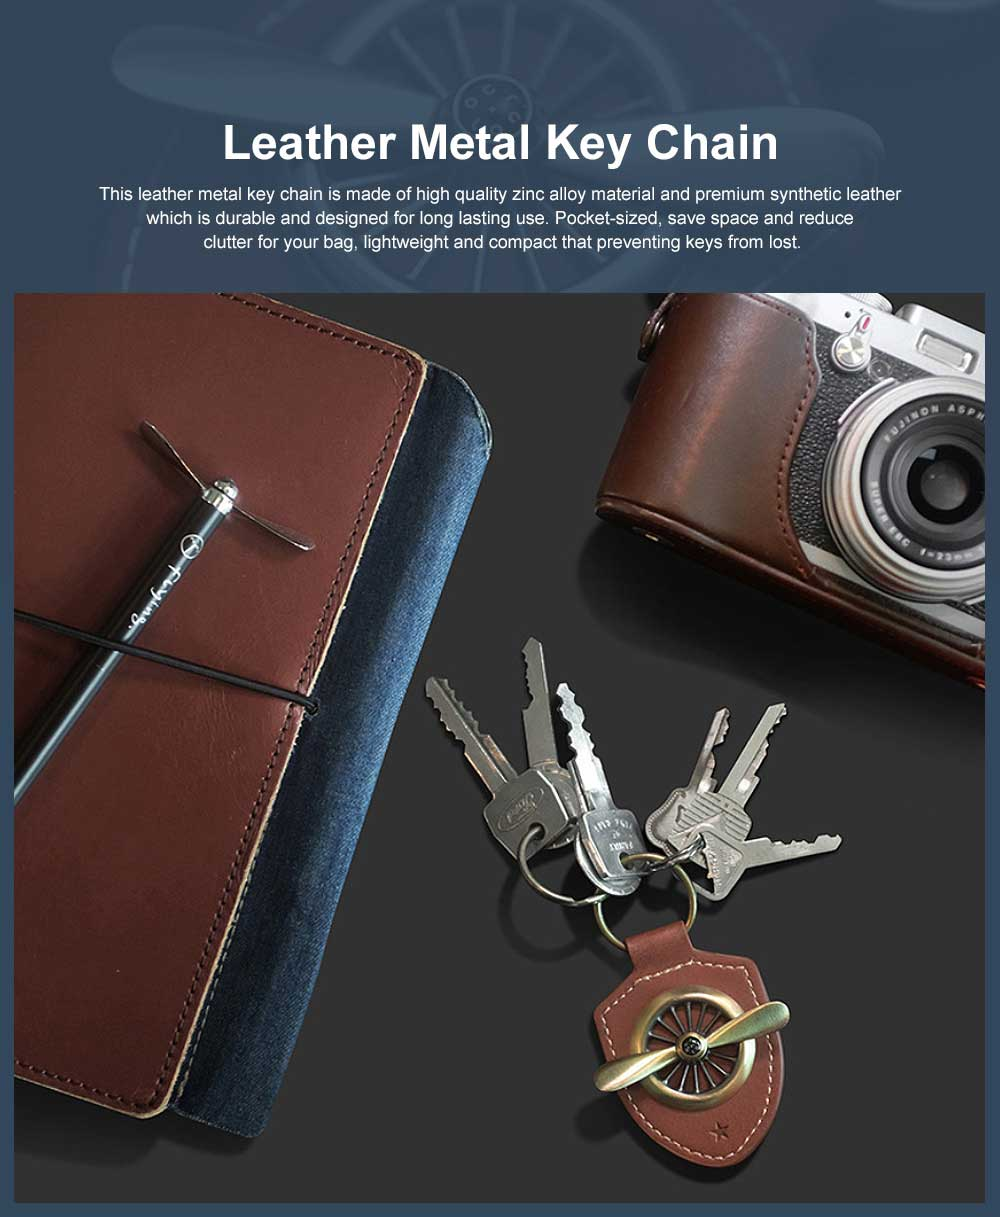 Leather Metal Key Chain Air Force No.2 Keychain Key Ring Men Fashion Accessories Gifts for Boyfriend Men 0